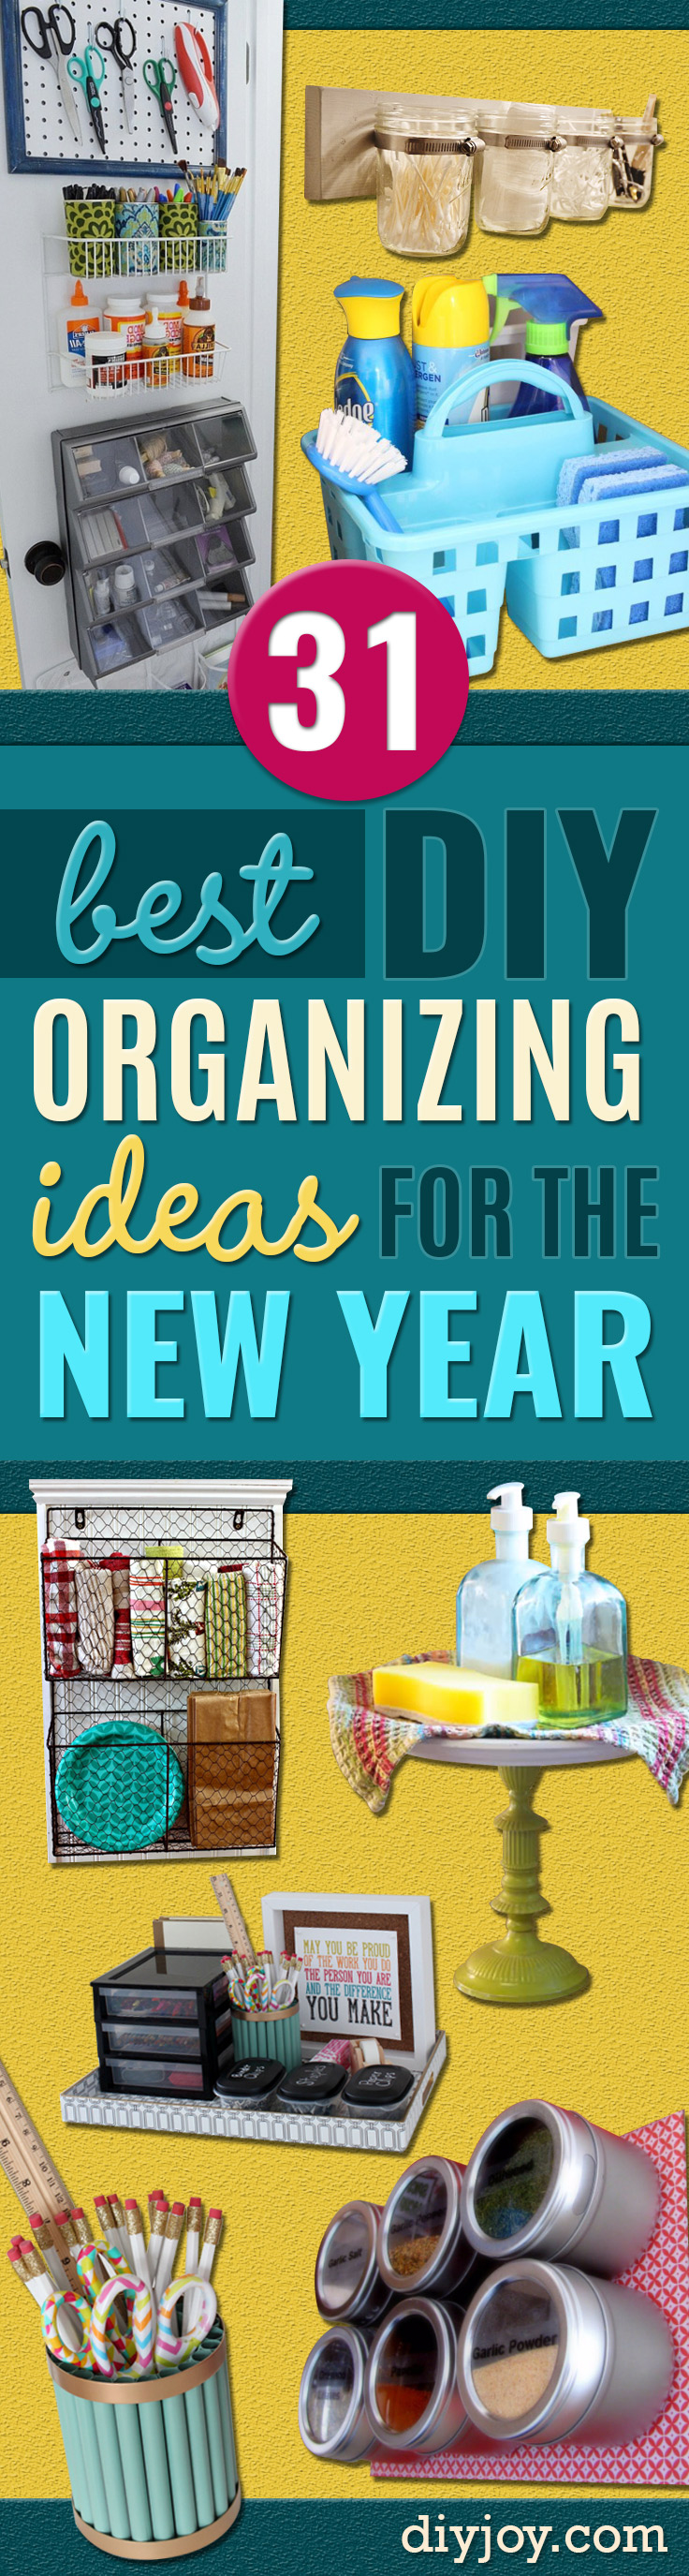 Best Organizing Ideas for the New Year - Resolutions for Getting Organized - DIY Organizing Projects for Home, Bedroom, Closet, Bath and Kitchen - Easy Ways to Organize Shoes, Clutter, Desk and Closets - DIY Projects and Crafts for Women and Men